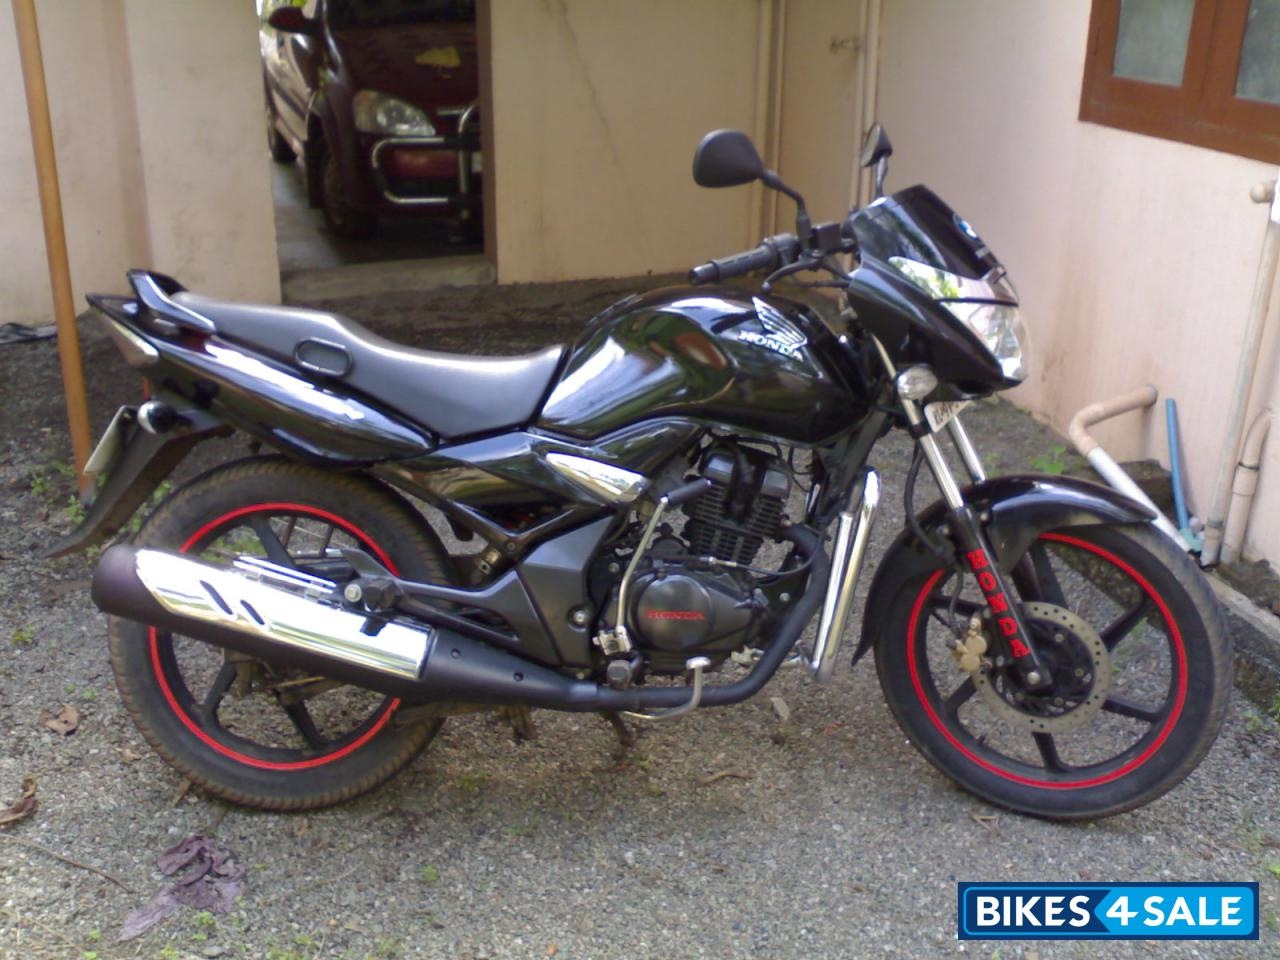 metallic black honda unicorn picture 4 bike id 38776